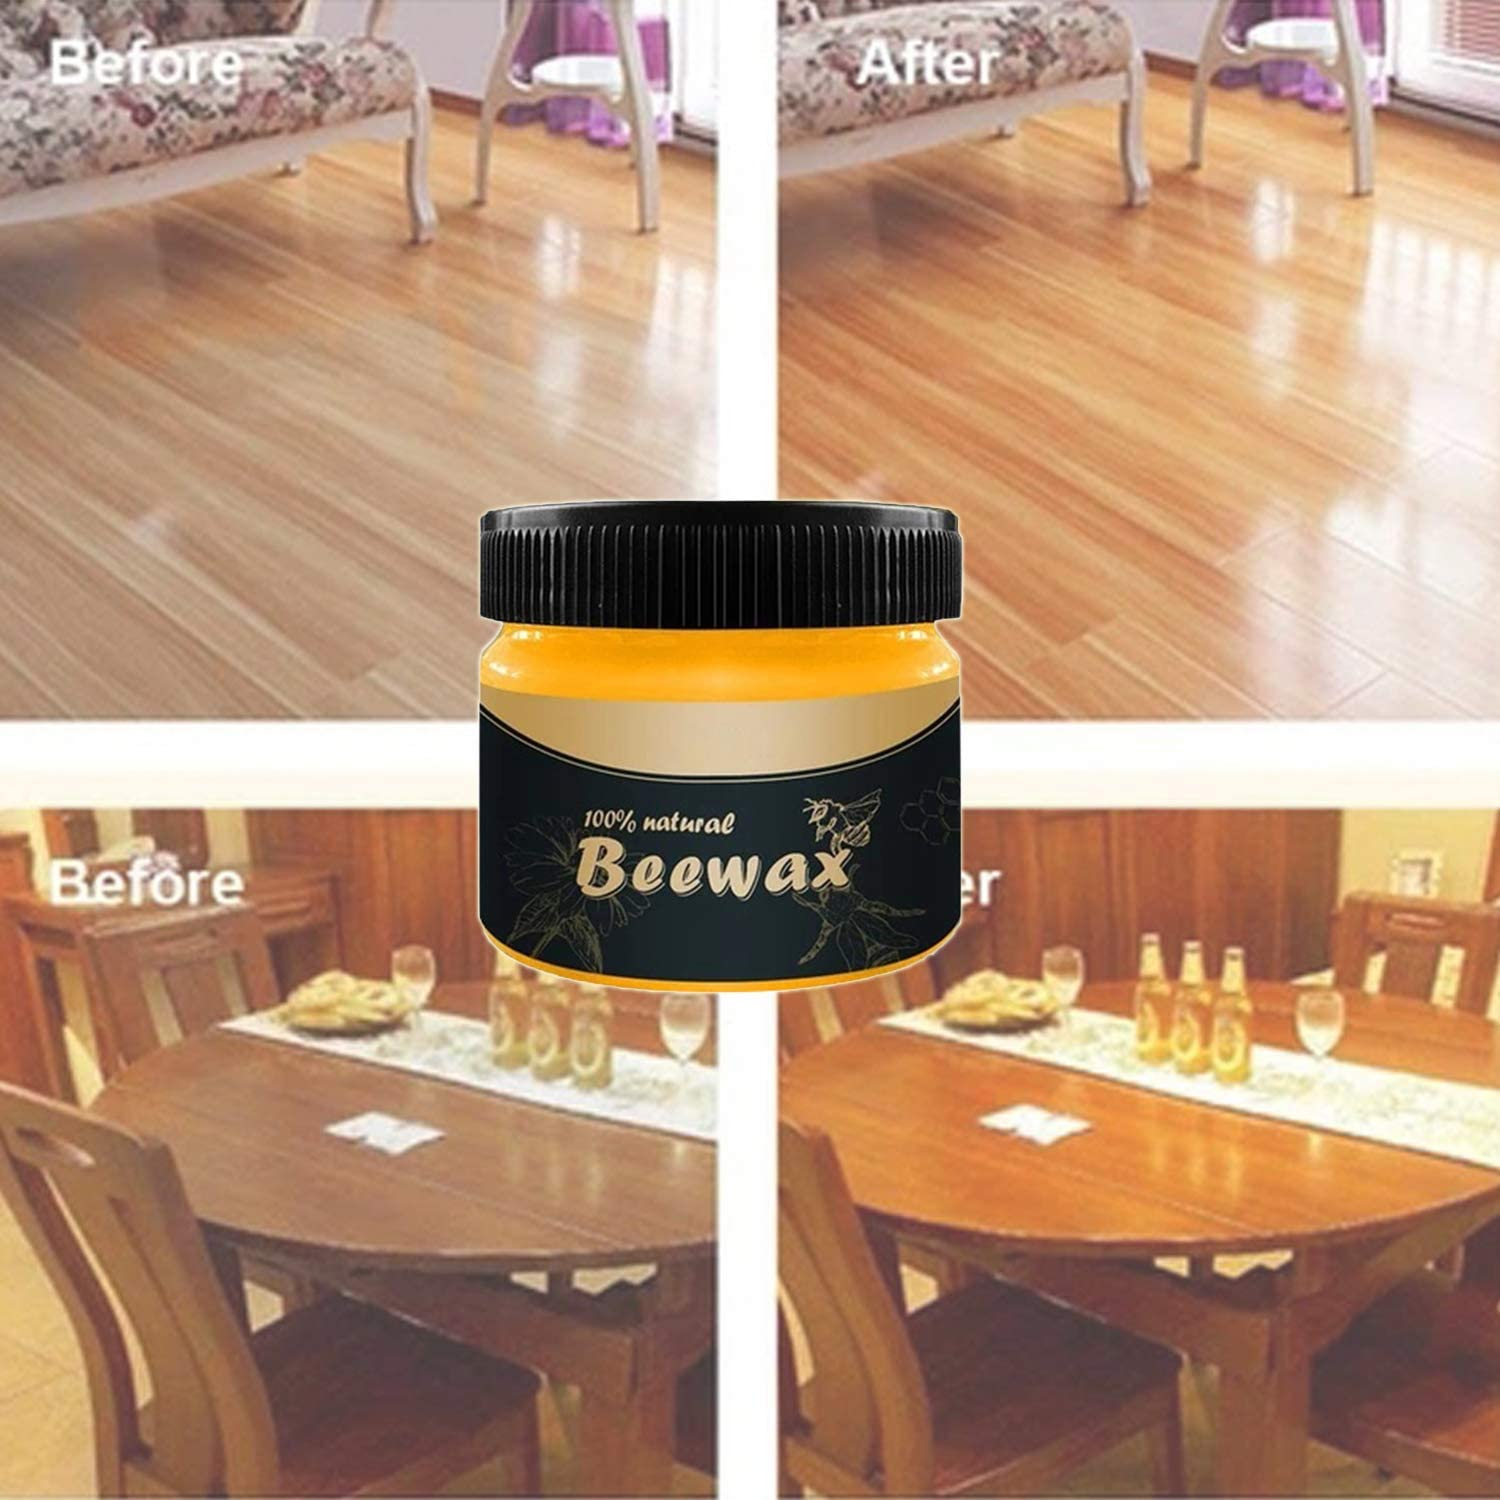 Wood Seasoning Beewax, Natural Furniture Care Polish,MultiPurpose Beewax for Wood Cleaner and Polish Wipes Beewax (85g)